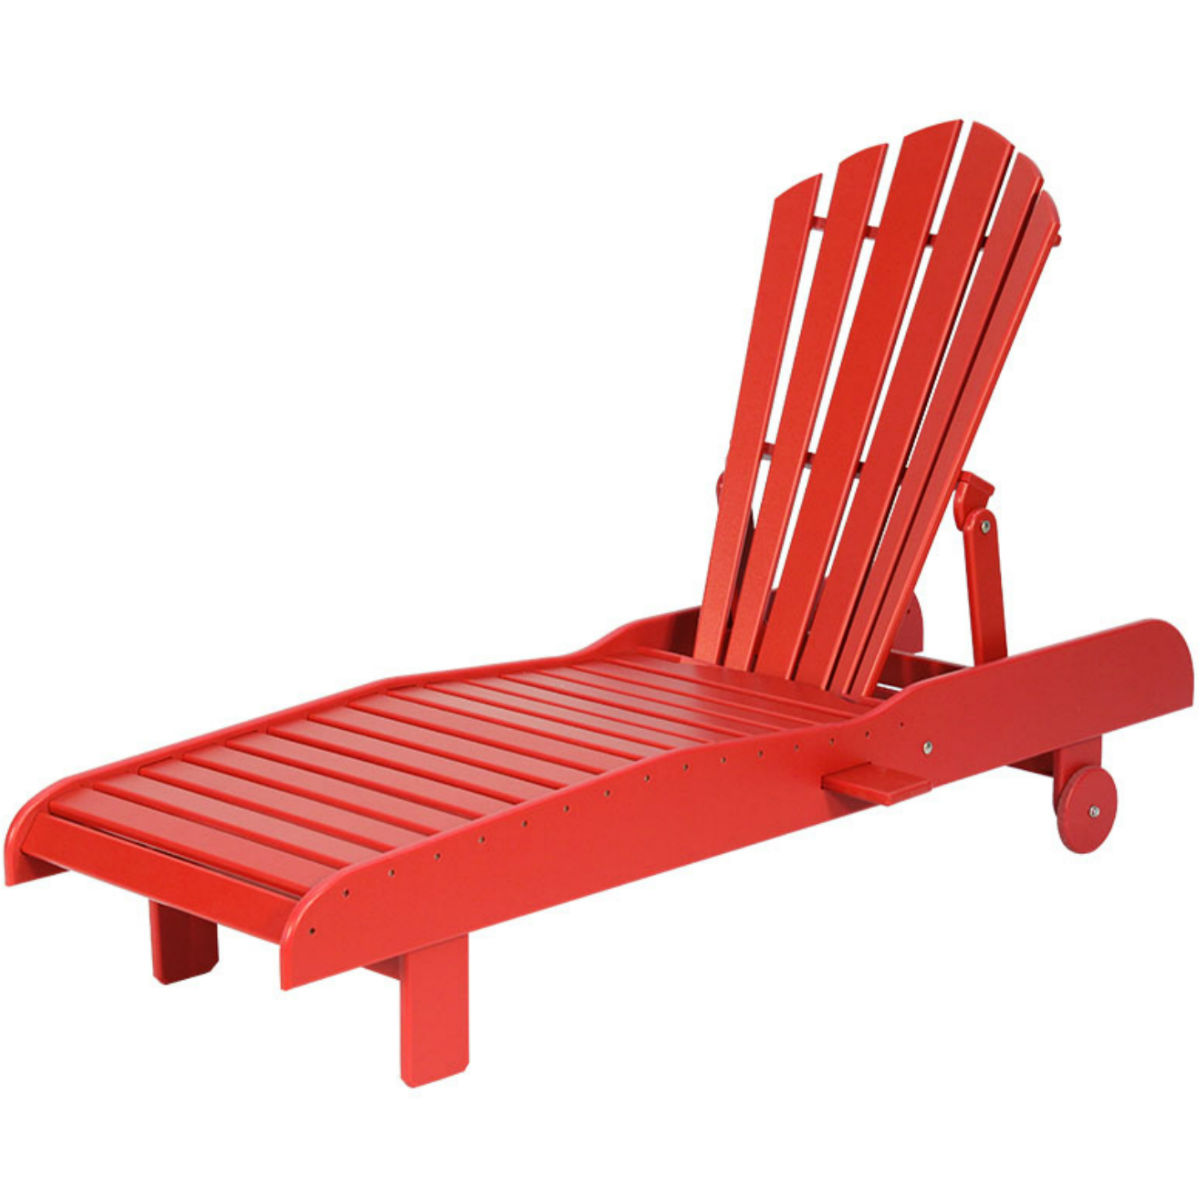 Shae Springs Lounge Chair Recycled Patio